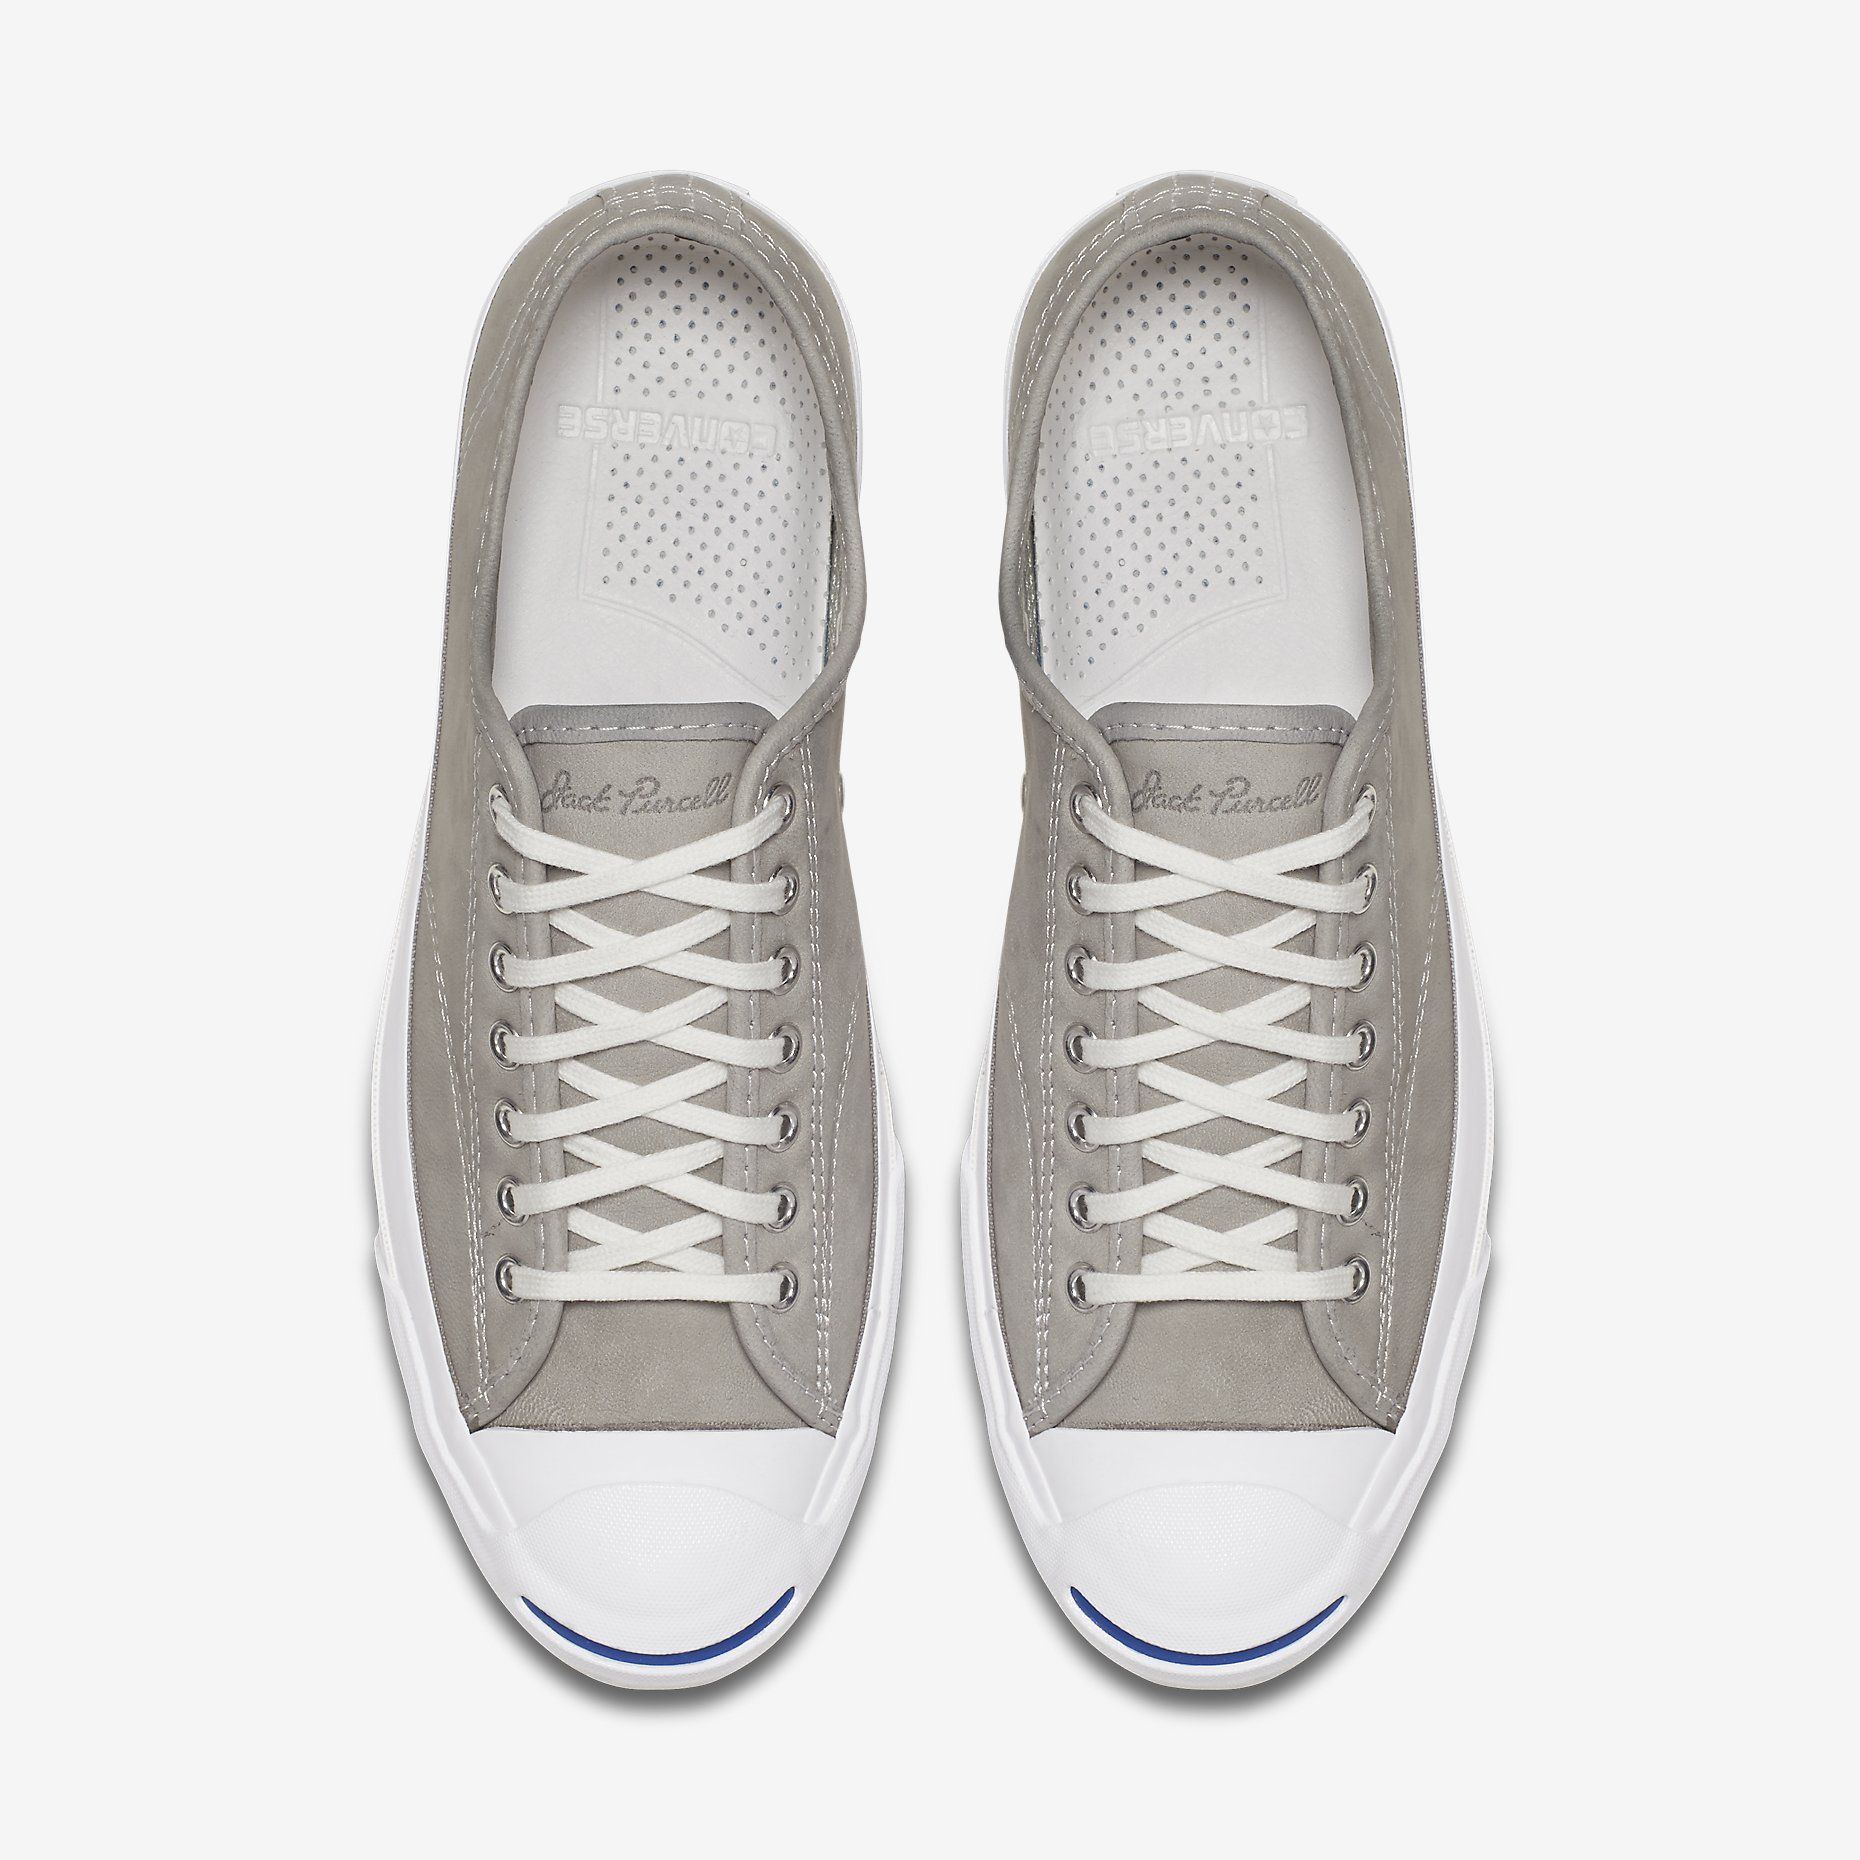 7c78735342a7 Converse Jack Purcell Signature Low Top Perforated Goat Leather White White  White